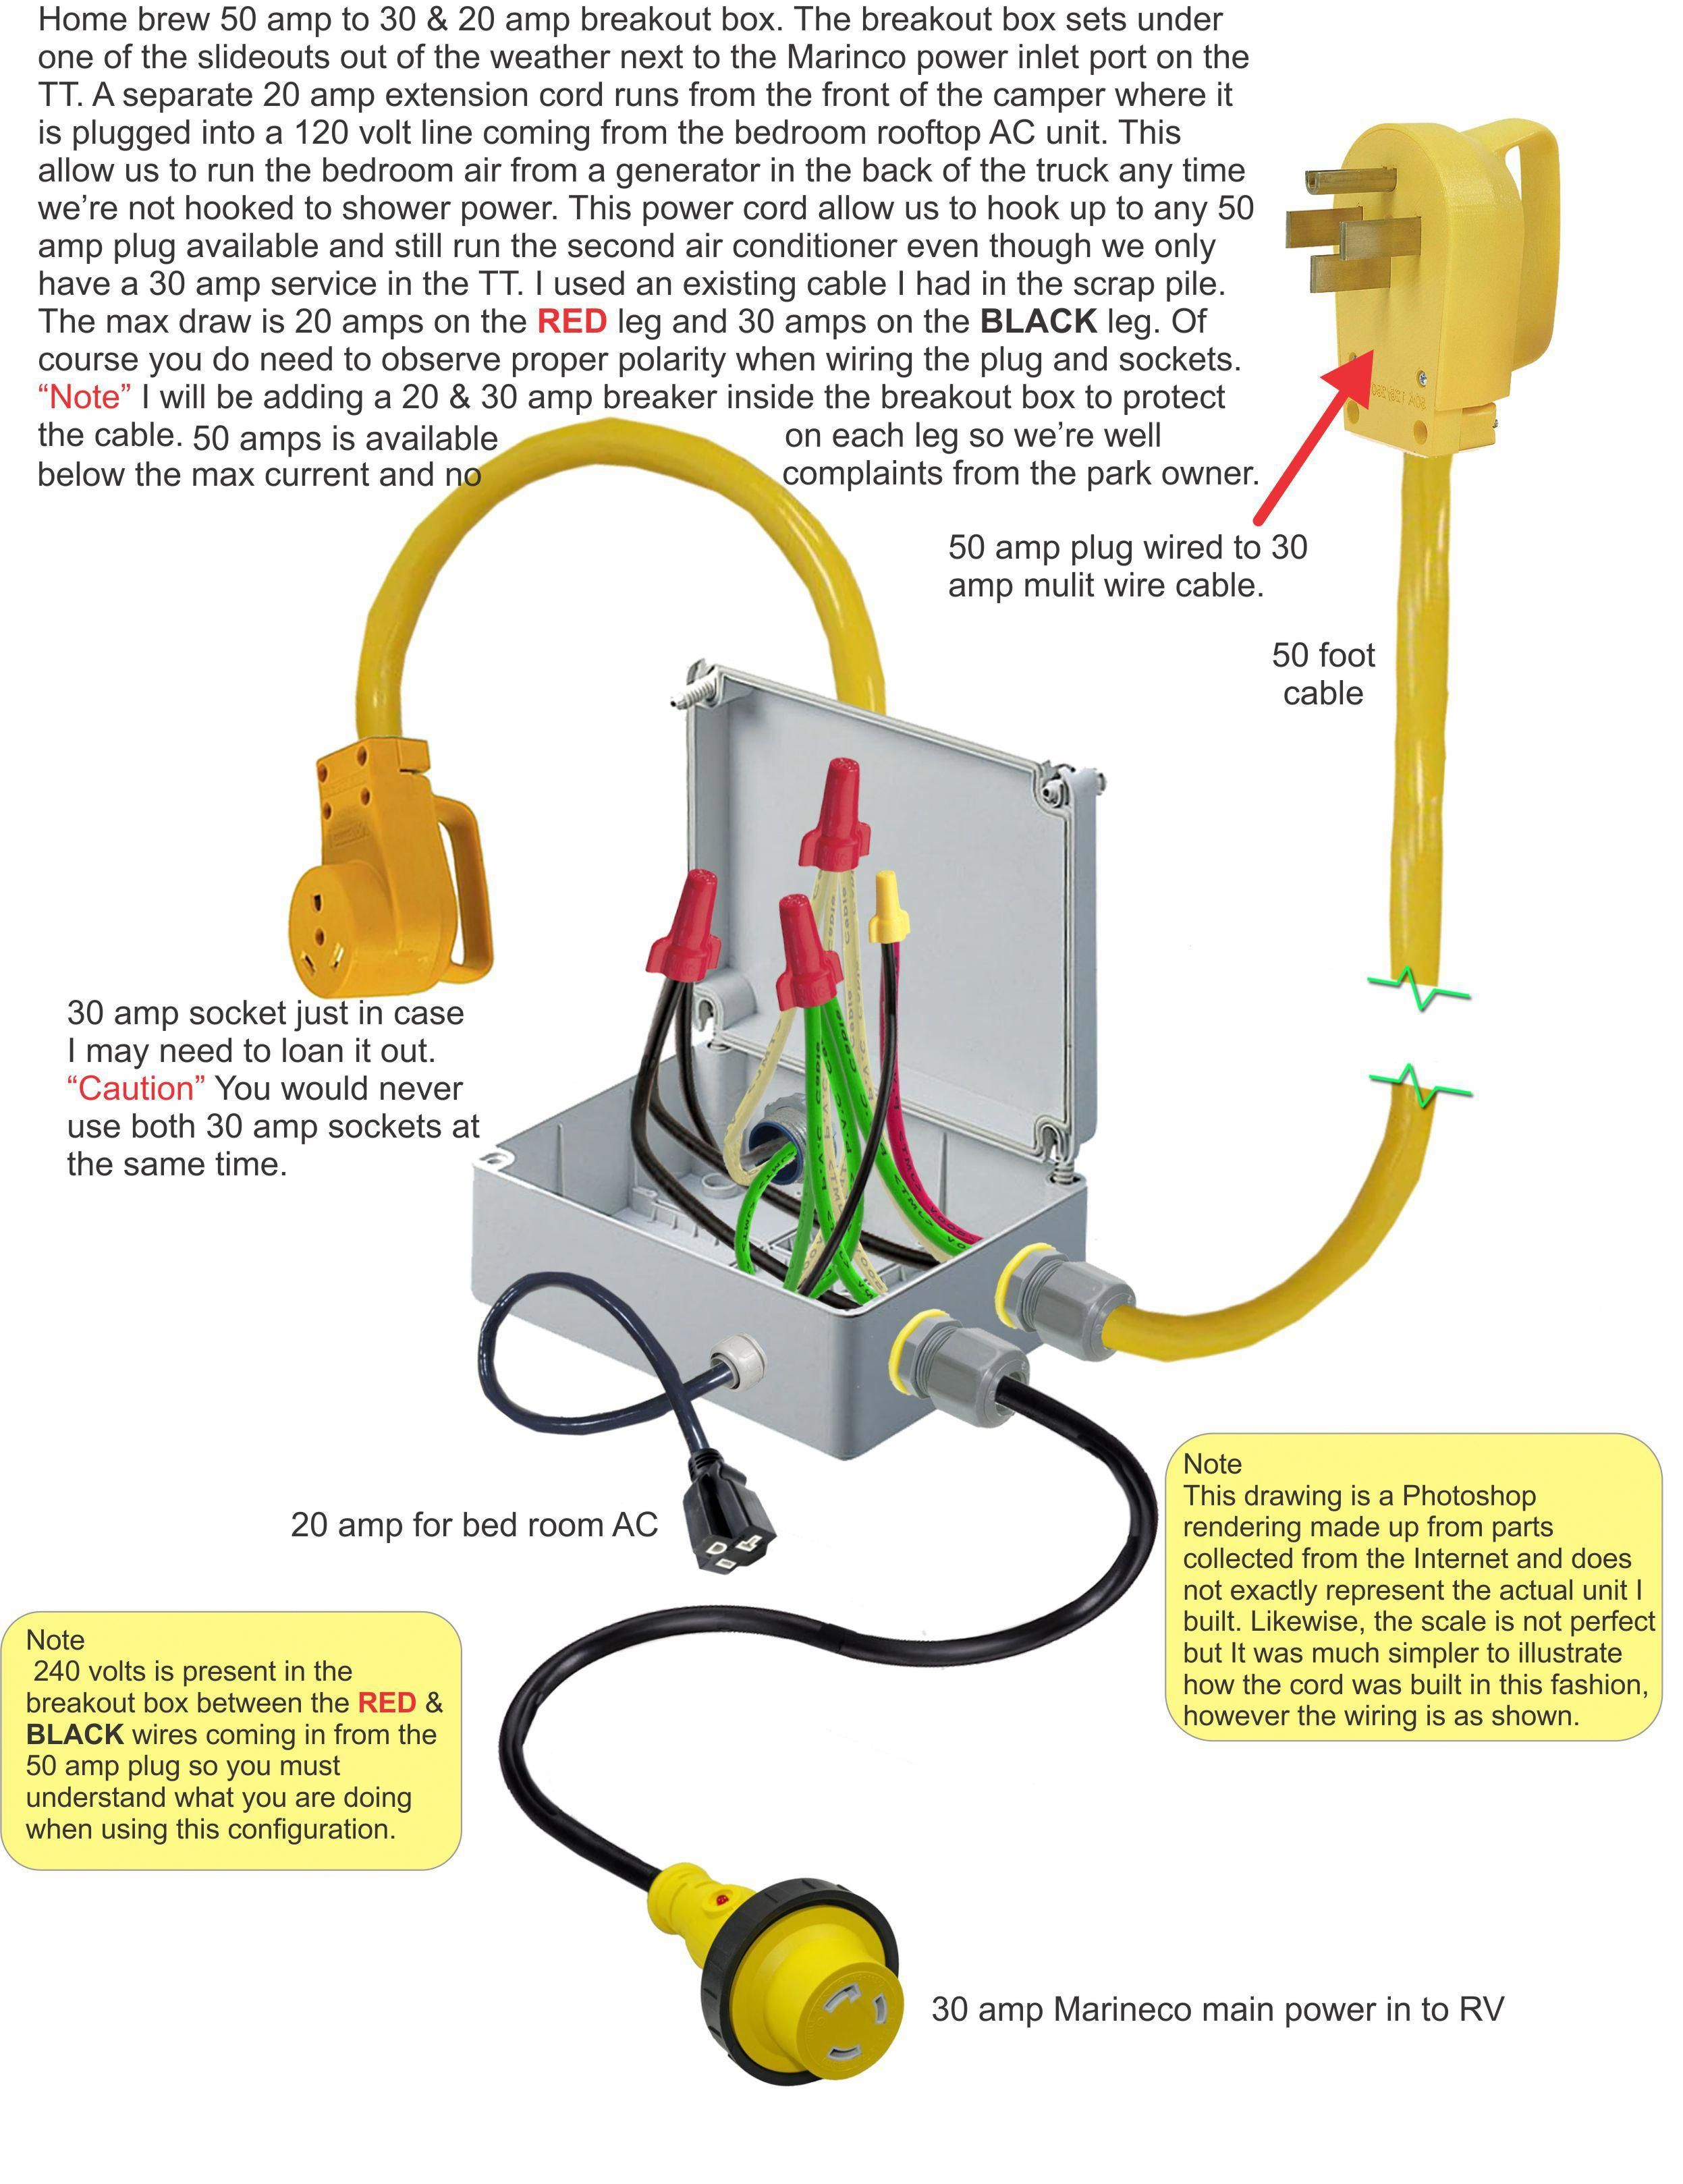 50 Amp Plug Wiring Diagram : wiring, diagram, Wiring, Diagram, Details, Found, Clicking, Image., #CampingIdeas, Camping, Checklist,, Power, Inlet,, Advice